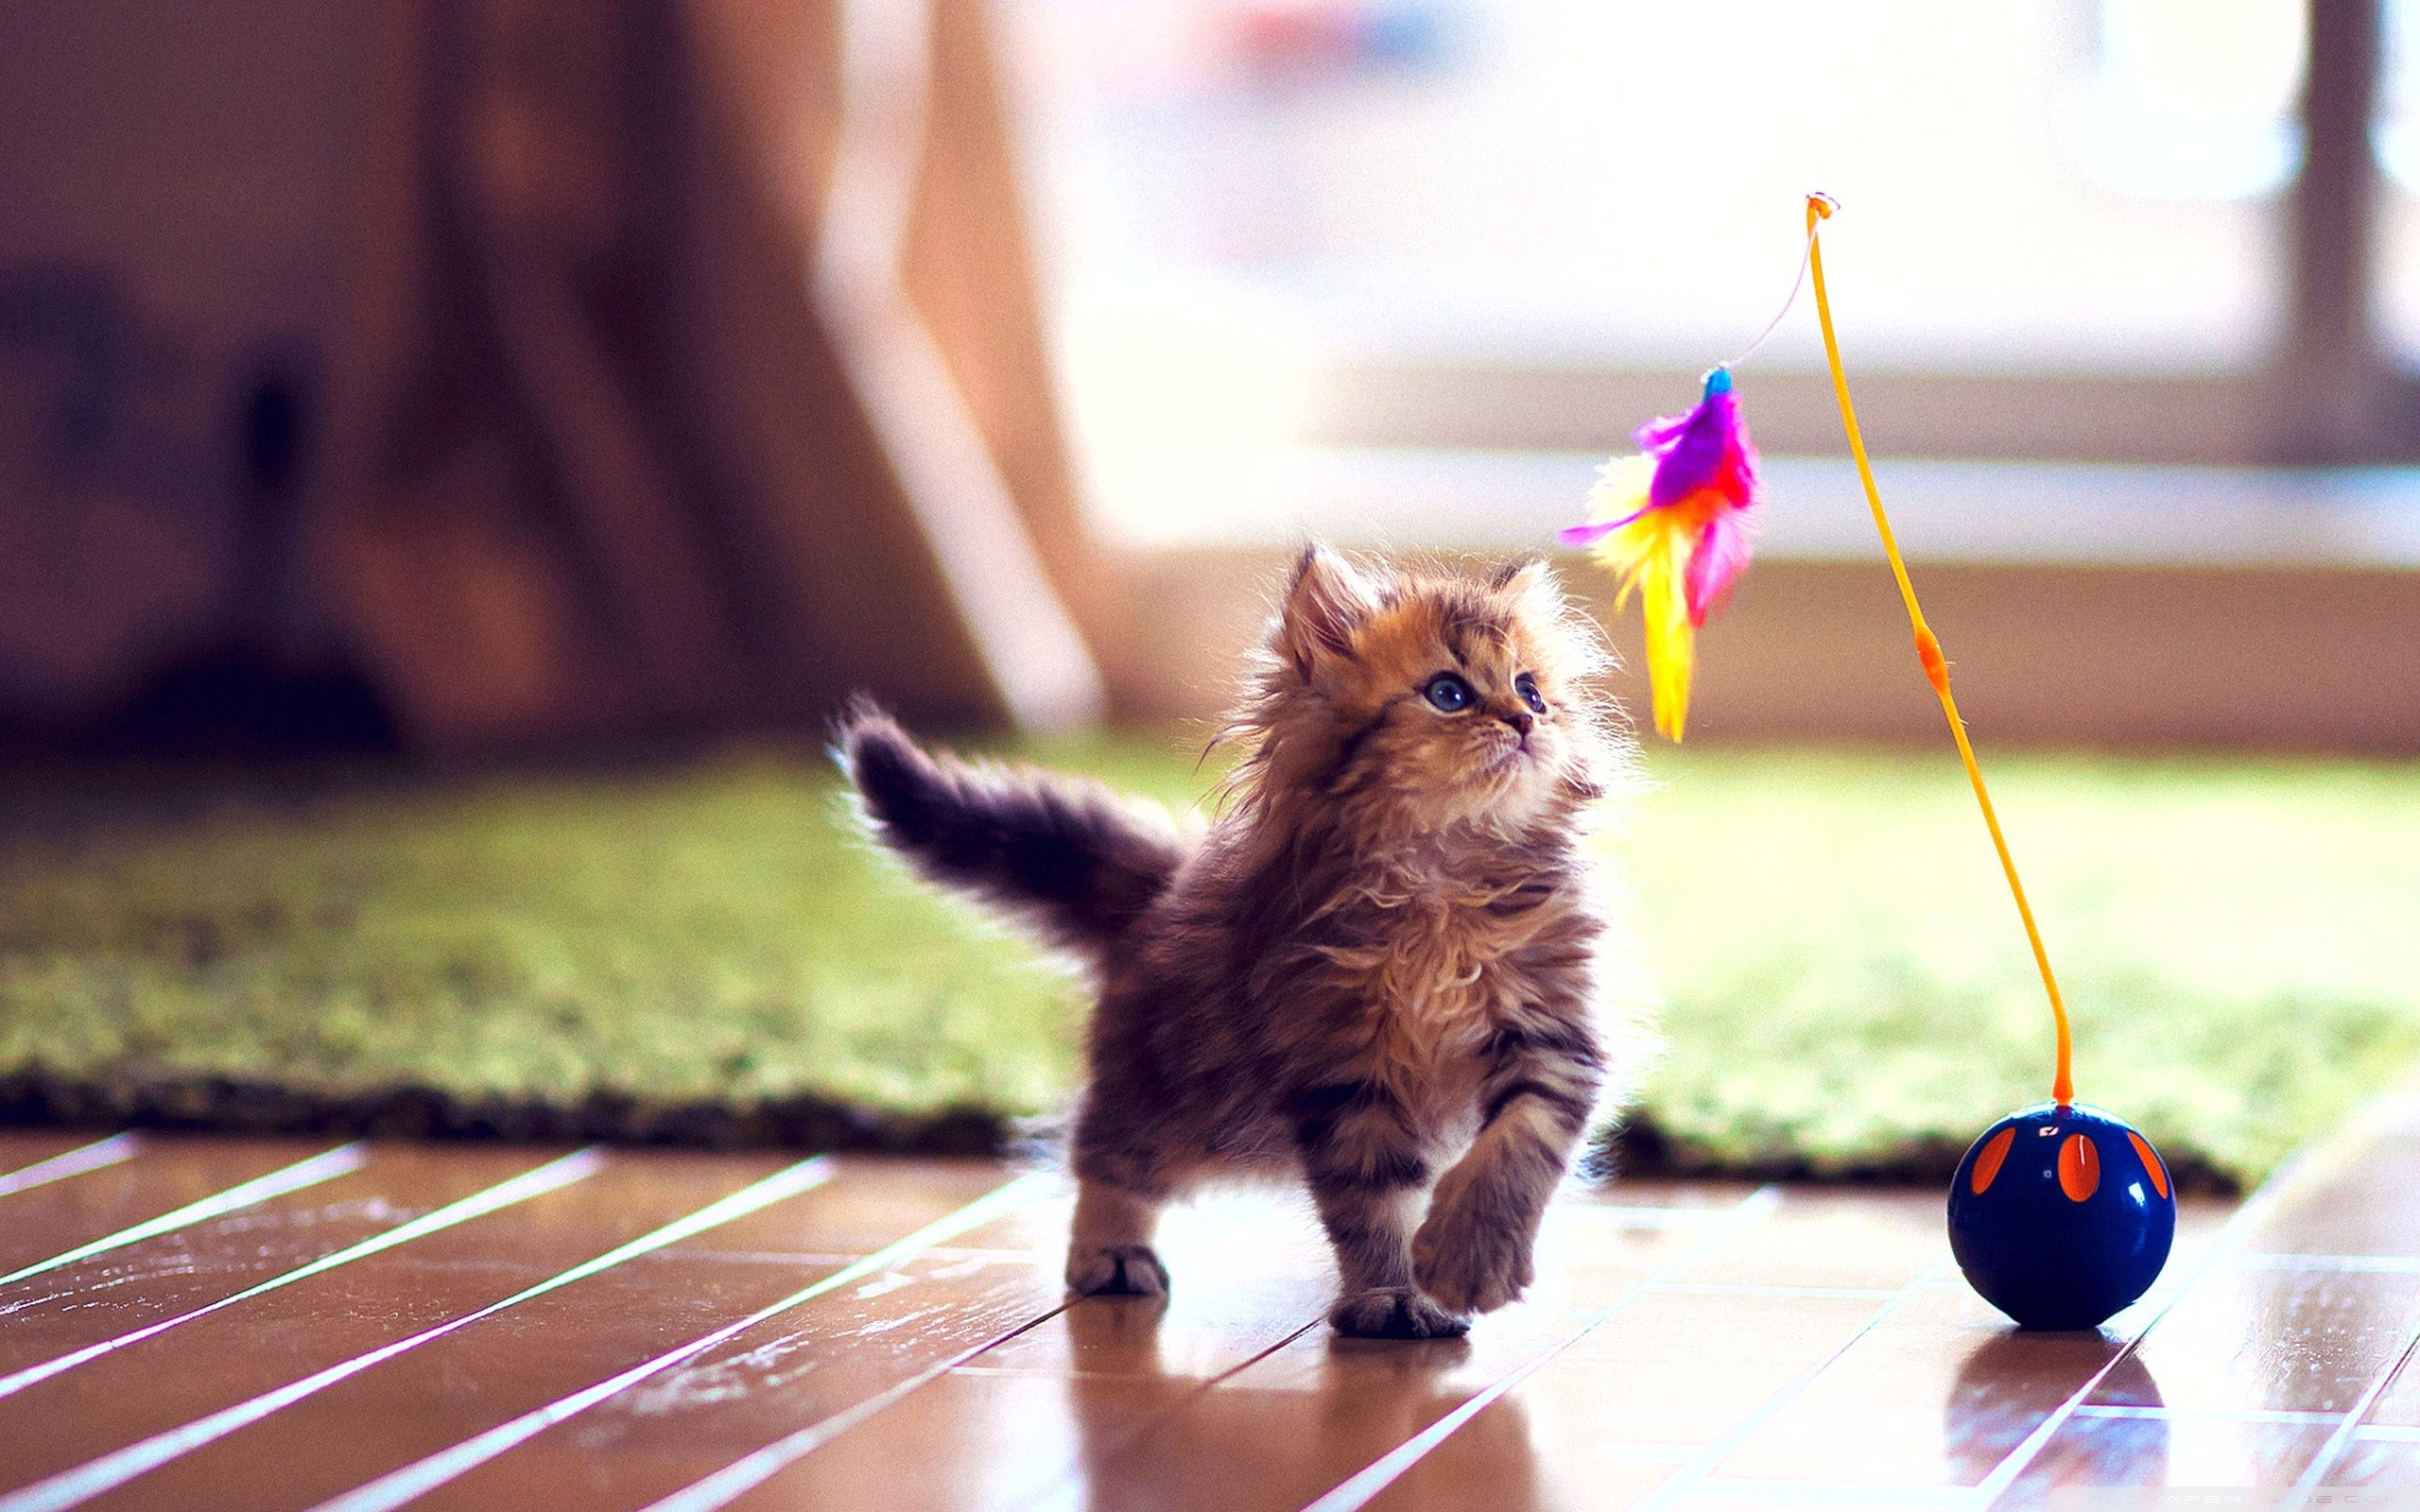 Very Cute Kitten Wallpaper Funny Cat Dog Pictures | HD Wallpapers |  Pinterest | Wallpaper and Wallpapers android